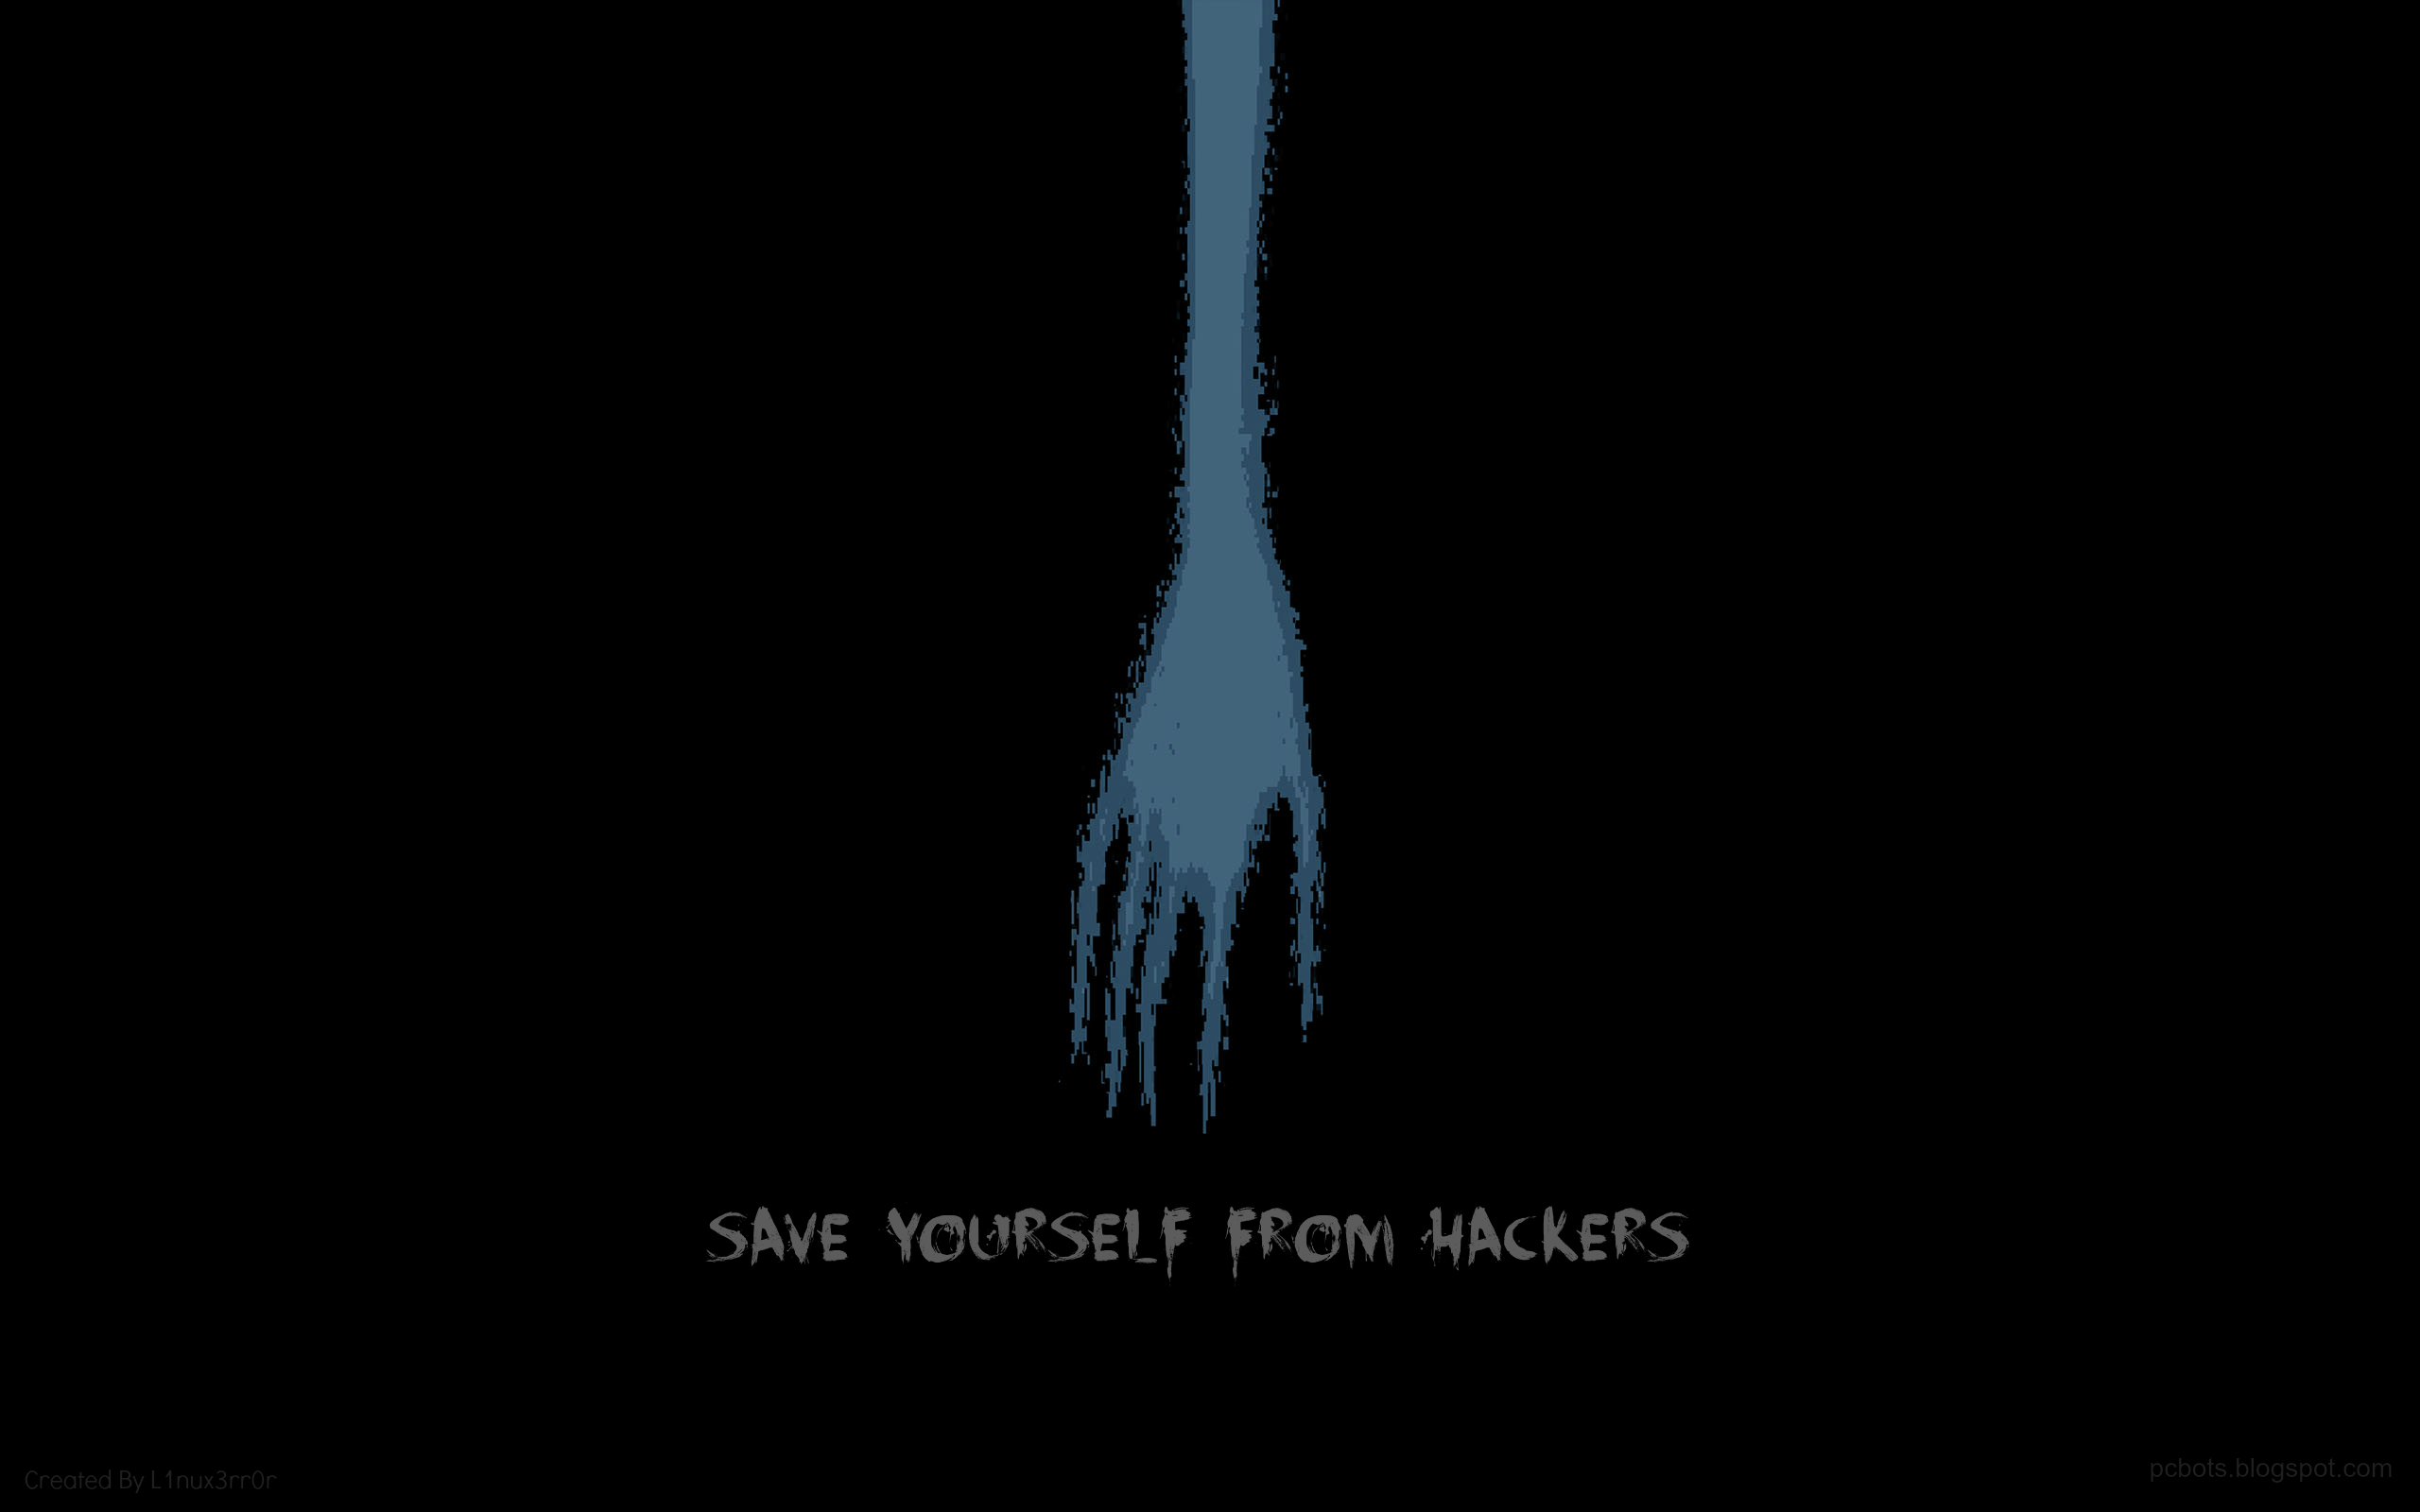 save yourself from hackers full hd papel de parede and